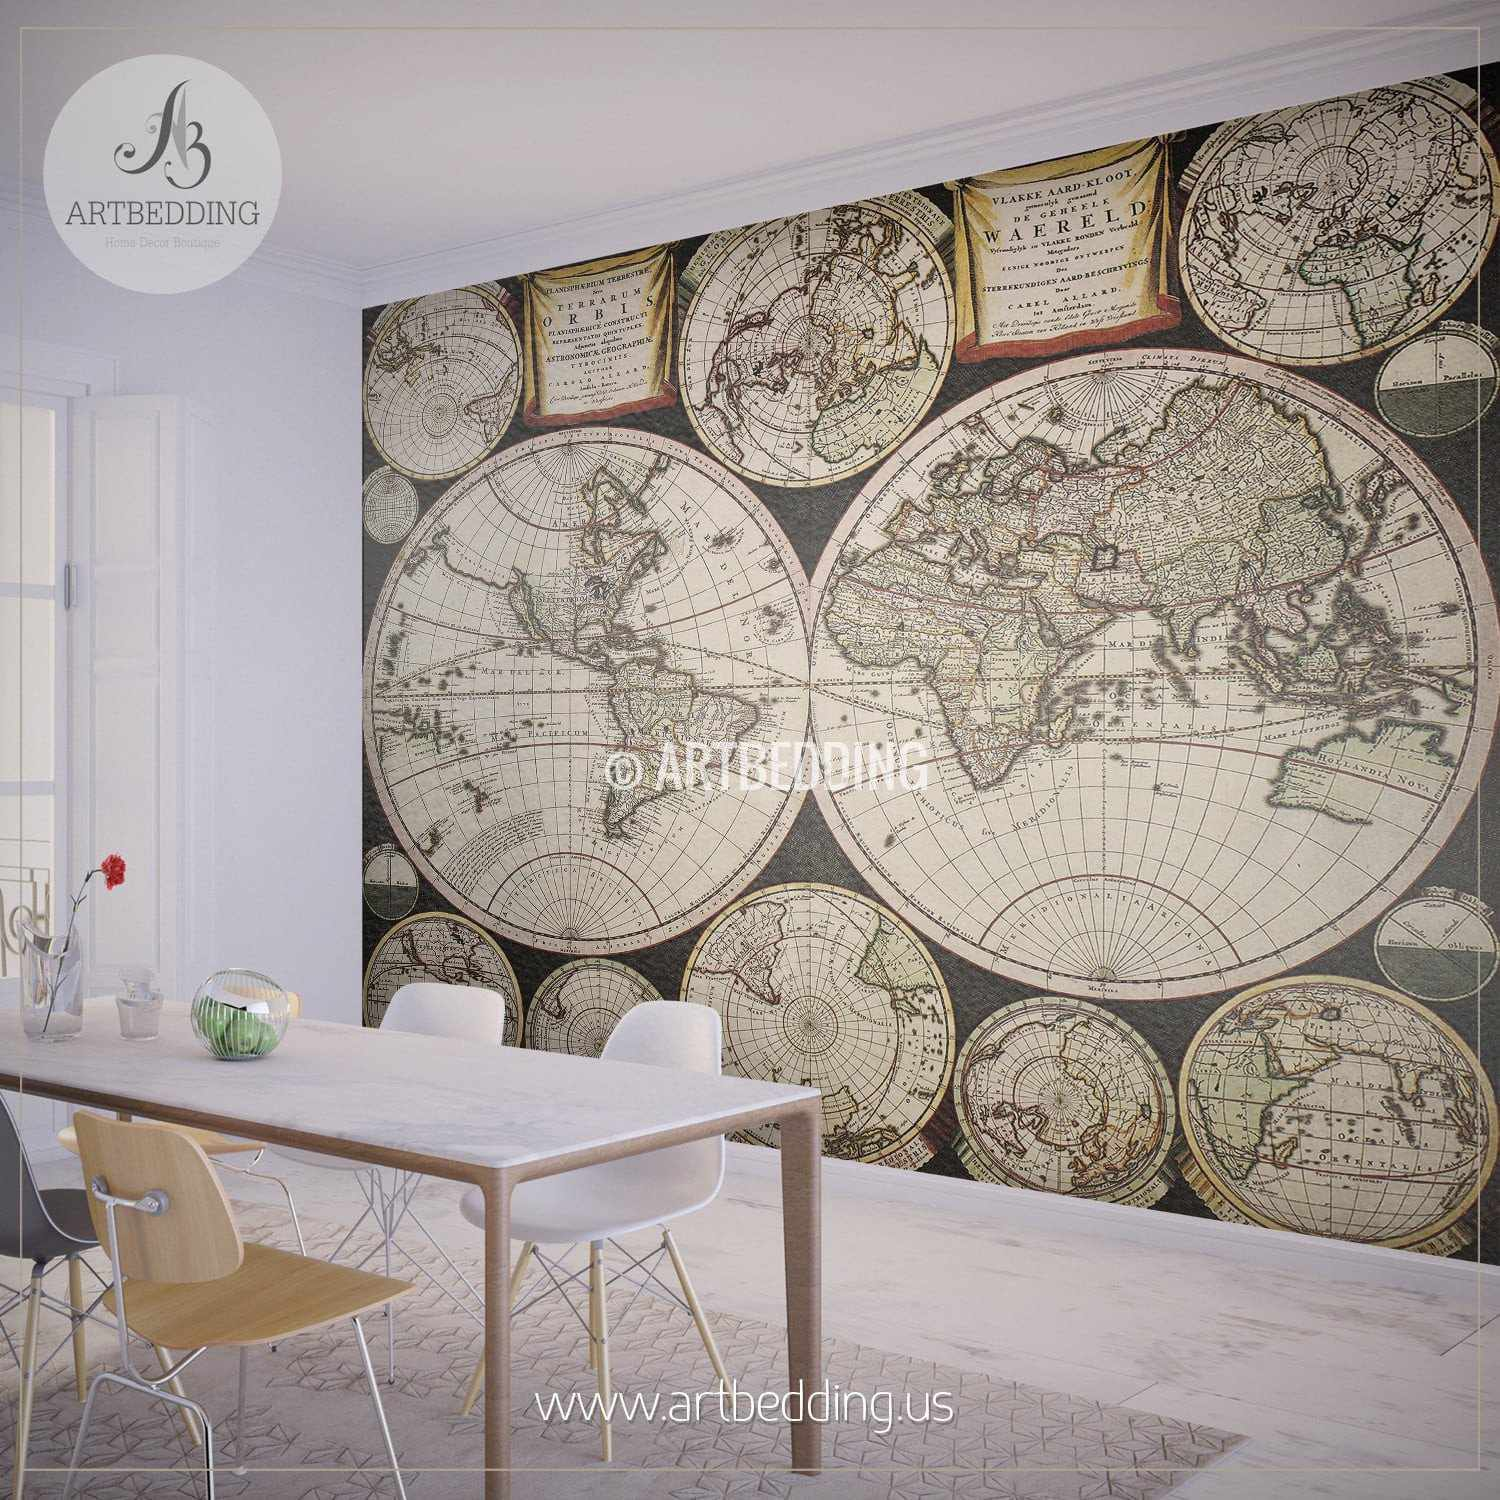 Vintage map wall mural self adhesive photo mural artbedding old double hemisphere world map from 1696 wall mural self adhesive peel stick photo gumiabroncs Image collections